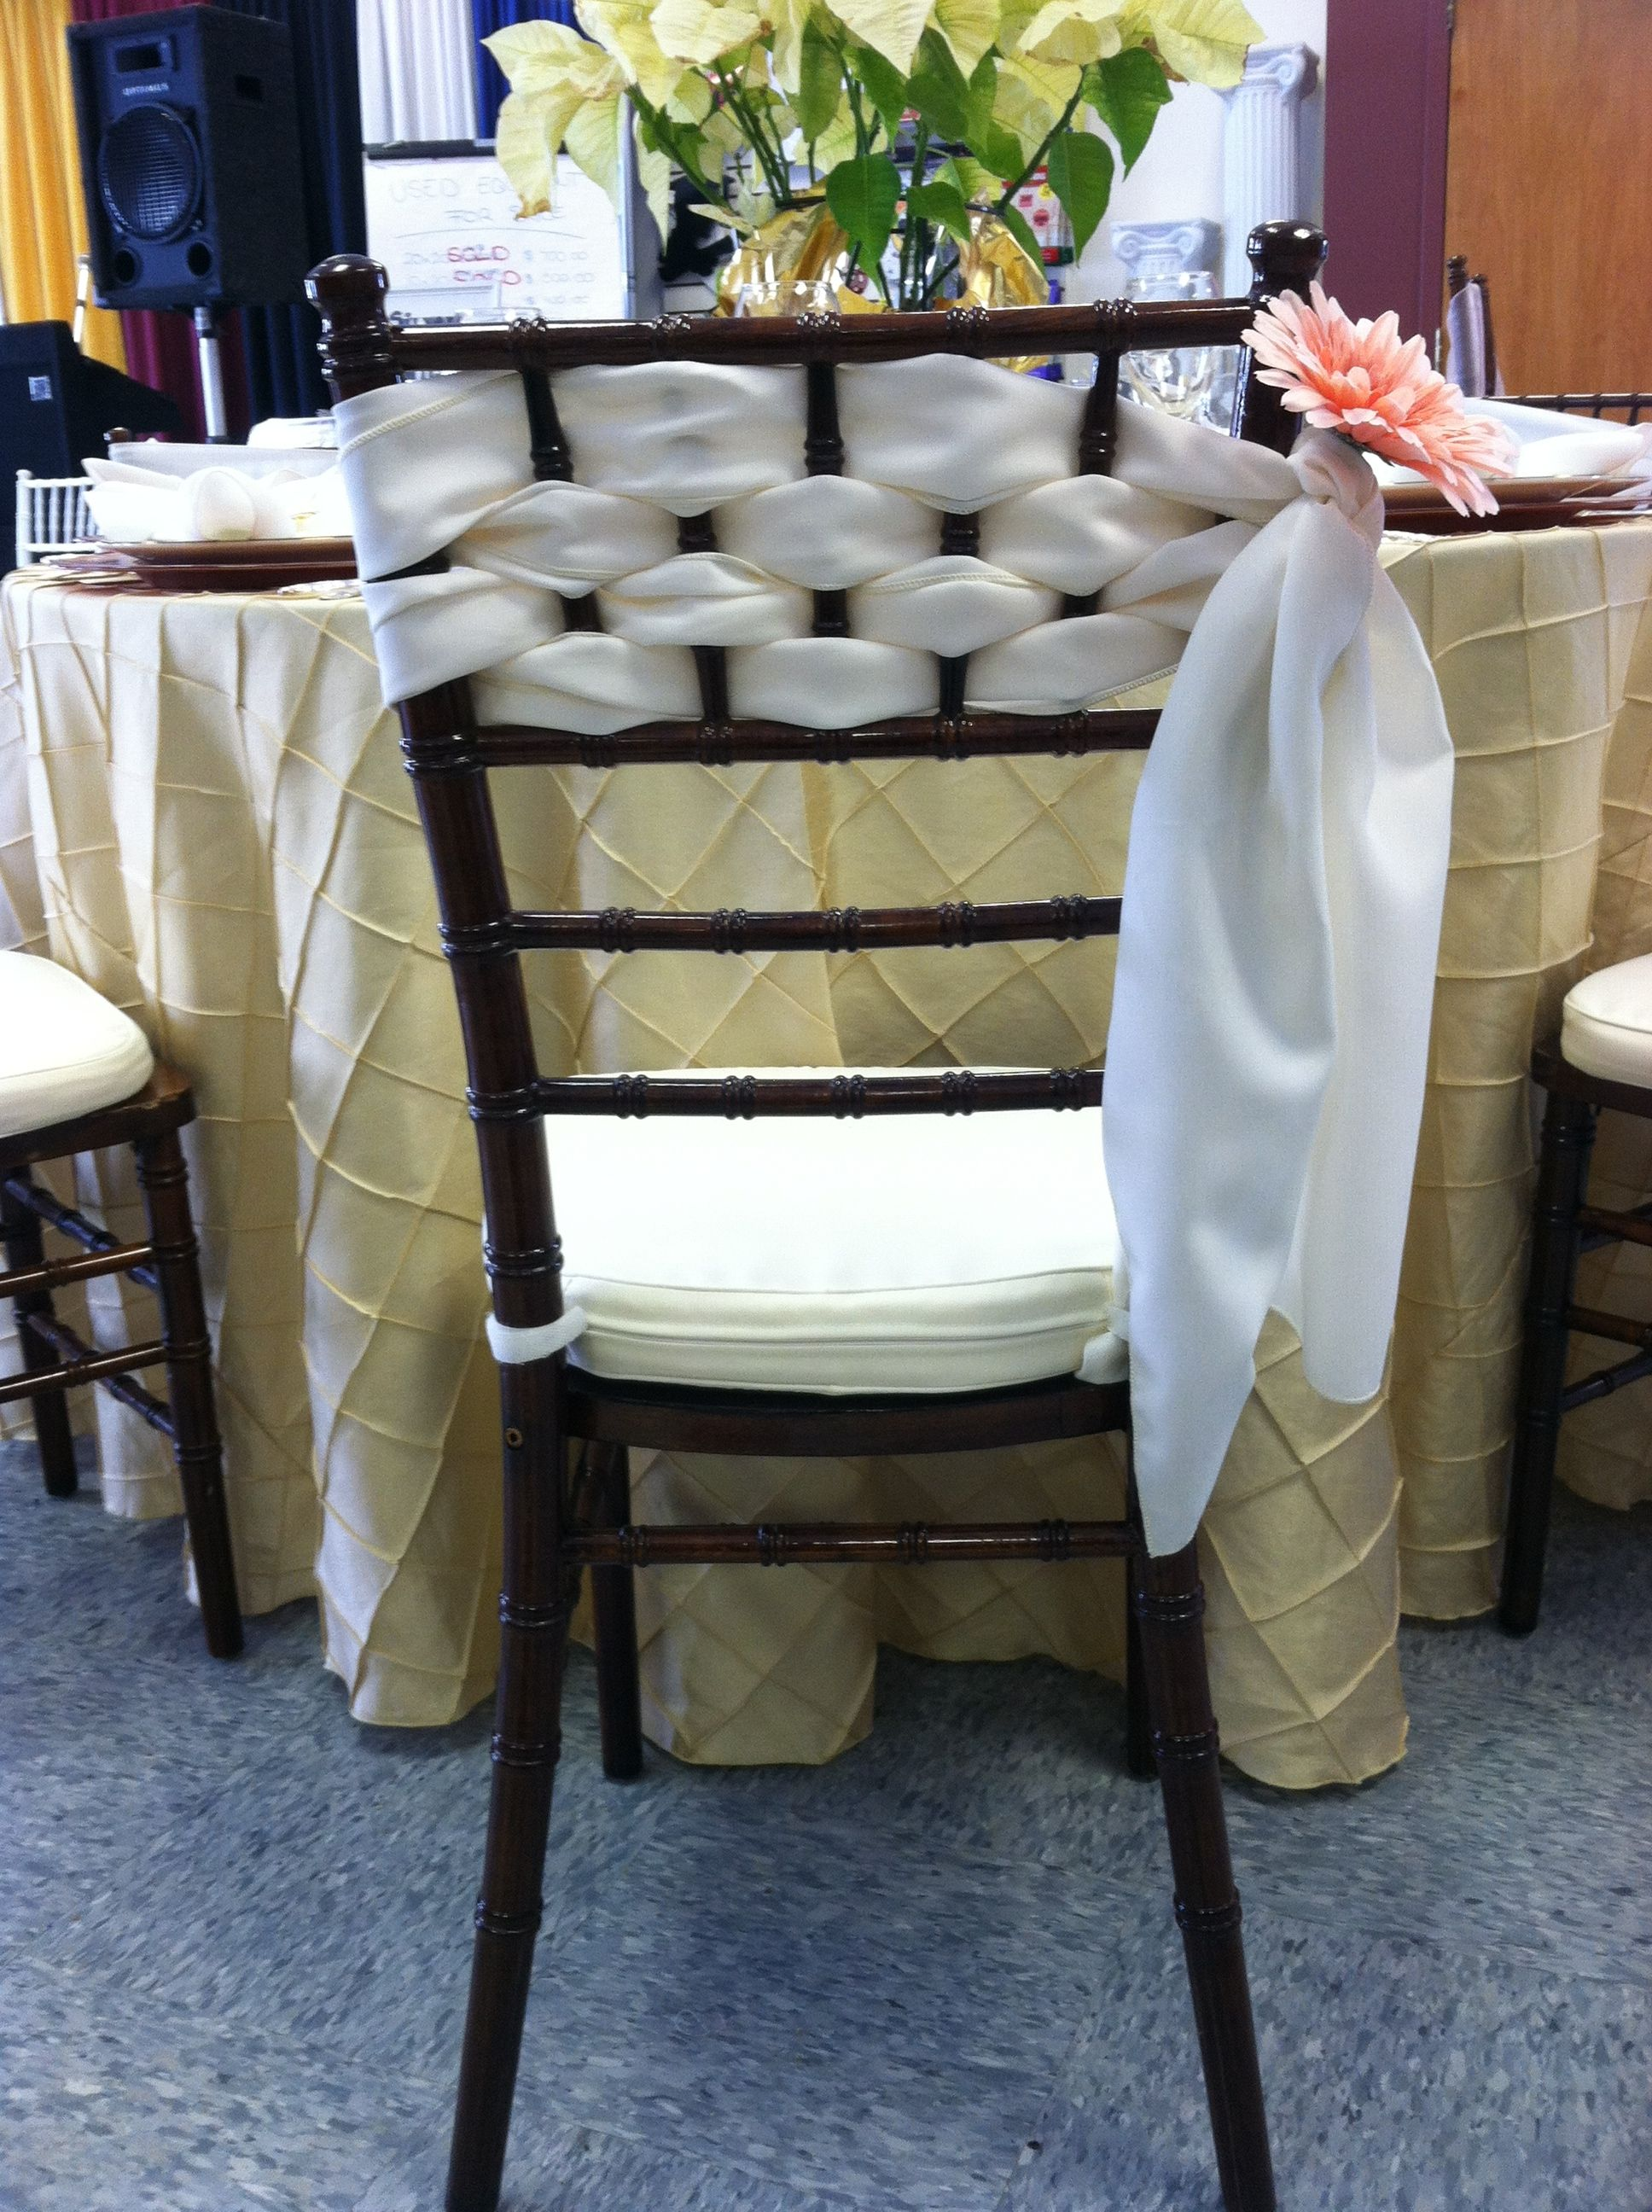 Chair sashes styles - Another Unique Chair Sash Style Add A Small Flower In Your Wedding Color To Give